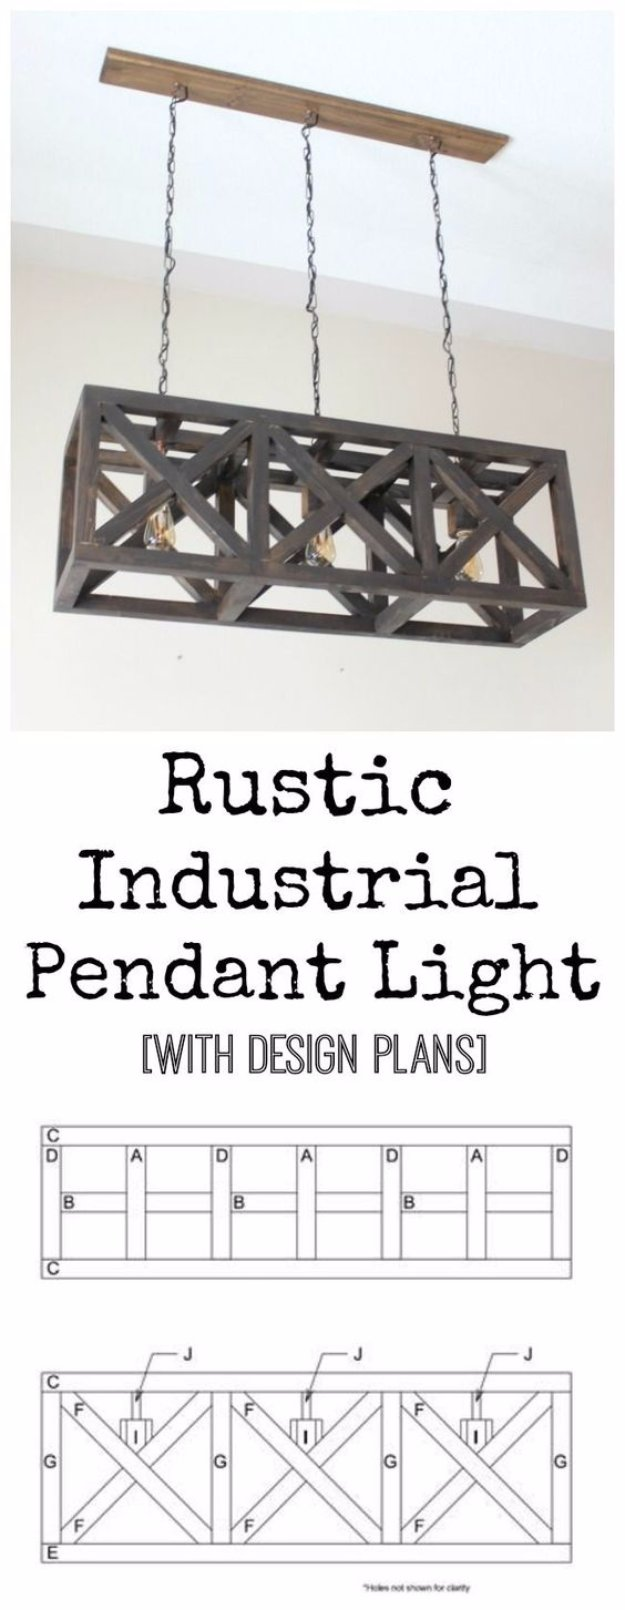 DIY Renters Decor Ideas - Rustic Industrial Pendant Light - Cool DIY Projects for Those Renting Aparments, Condos or Dorm Rooms - Easy Temporary Wall Art, Contact Paper, Washi Tape and Shelves to Make at Home #diyhomedecor #diyideas